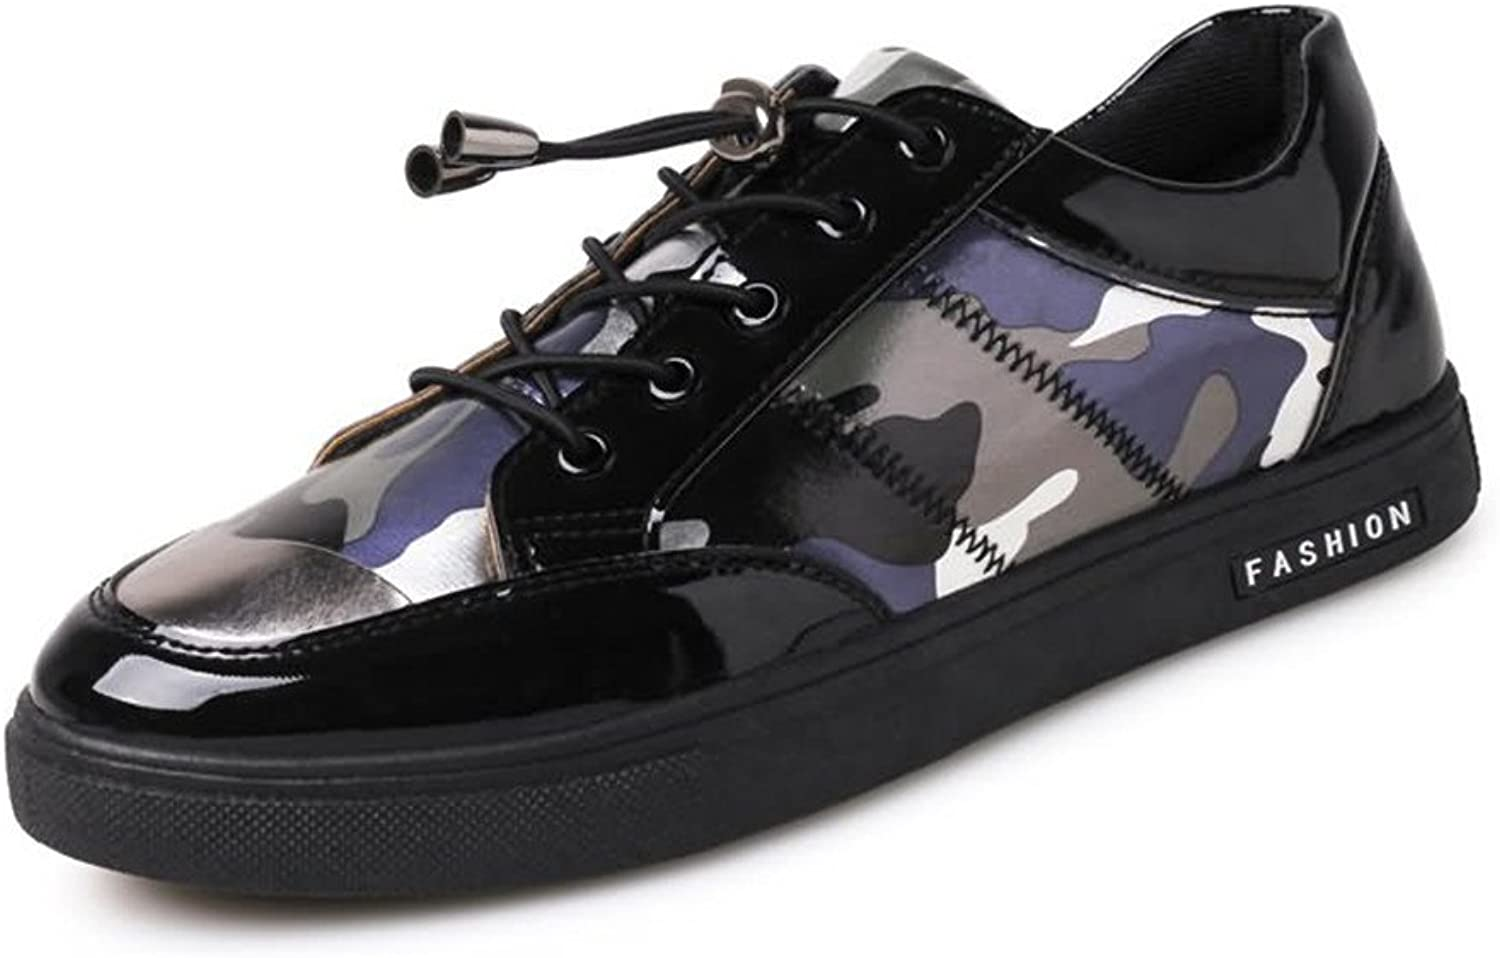 MUMUWU Men's Fashion Sneaker Flat Heel Lace Up Patent Leather Sports shoes Carrier